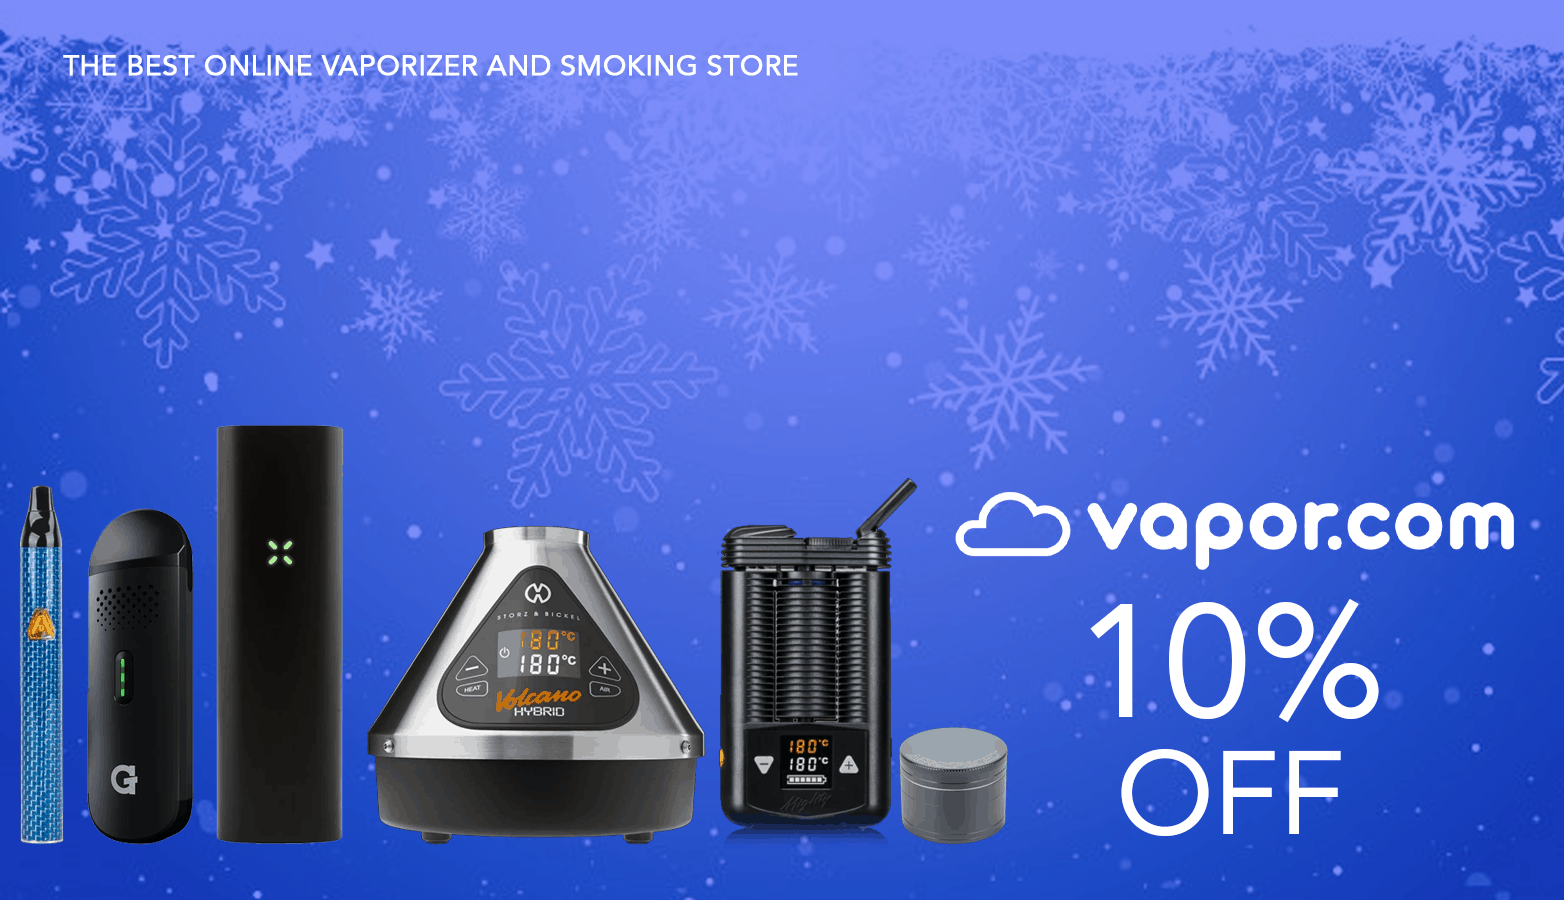 Vapor.com Smoking Accessories Coupon Code Offer Website